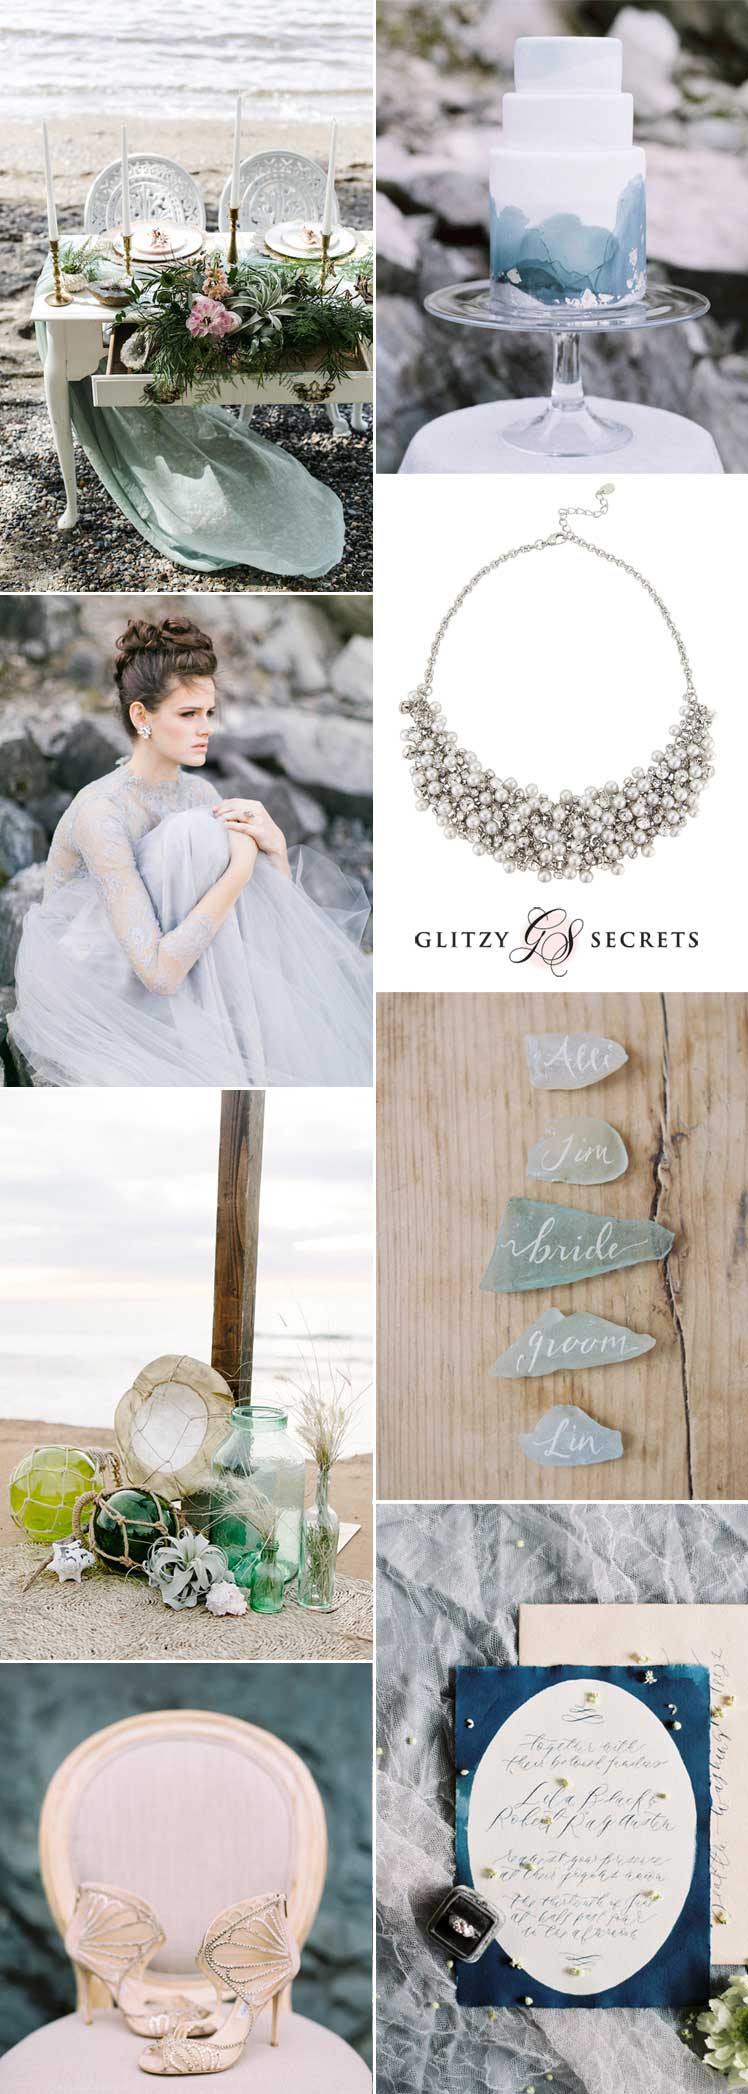 Stunning inspiration for a mermaid wedding